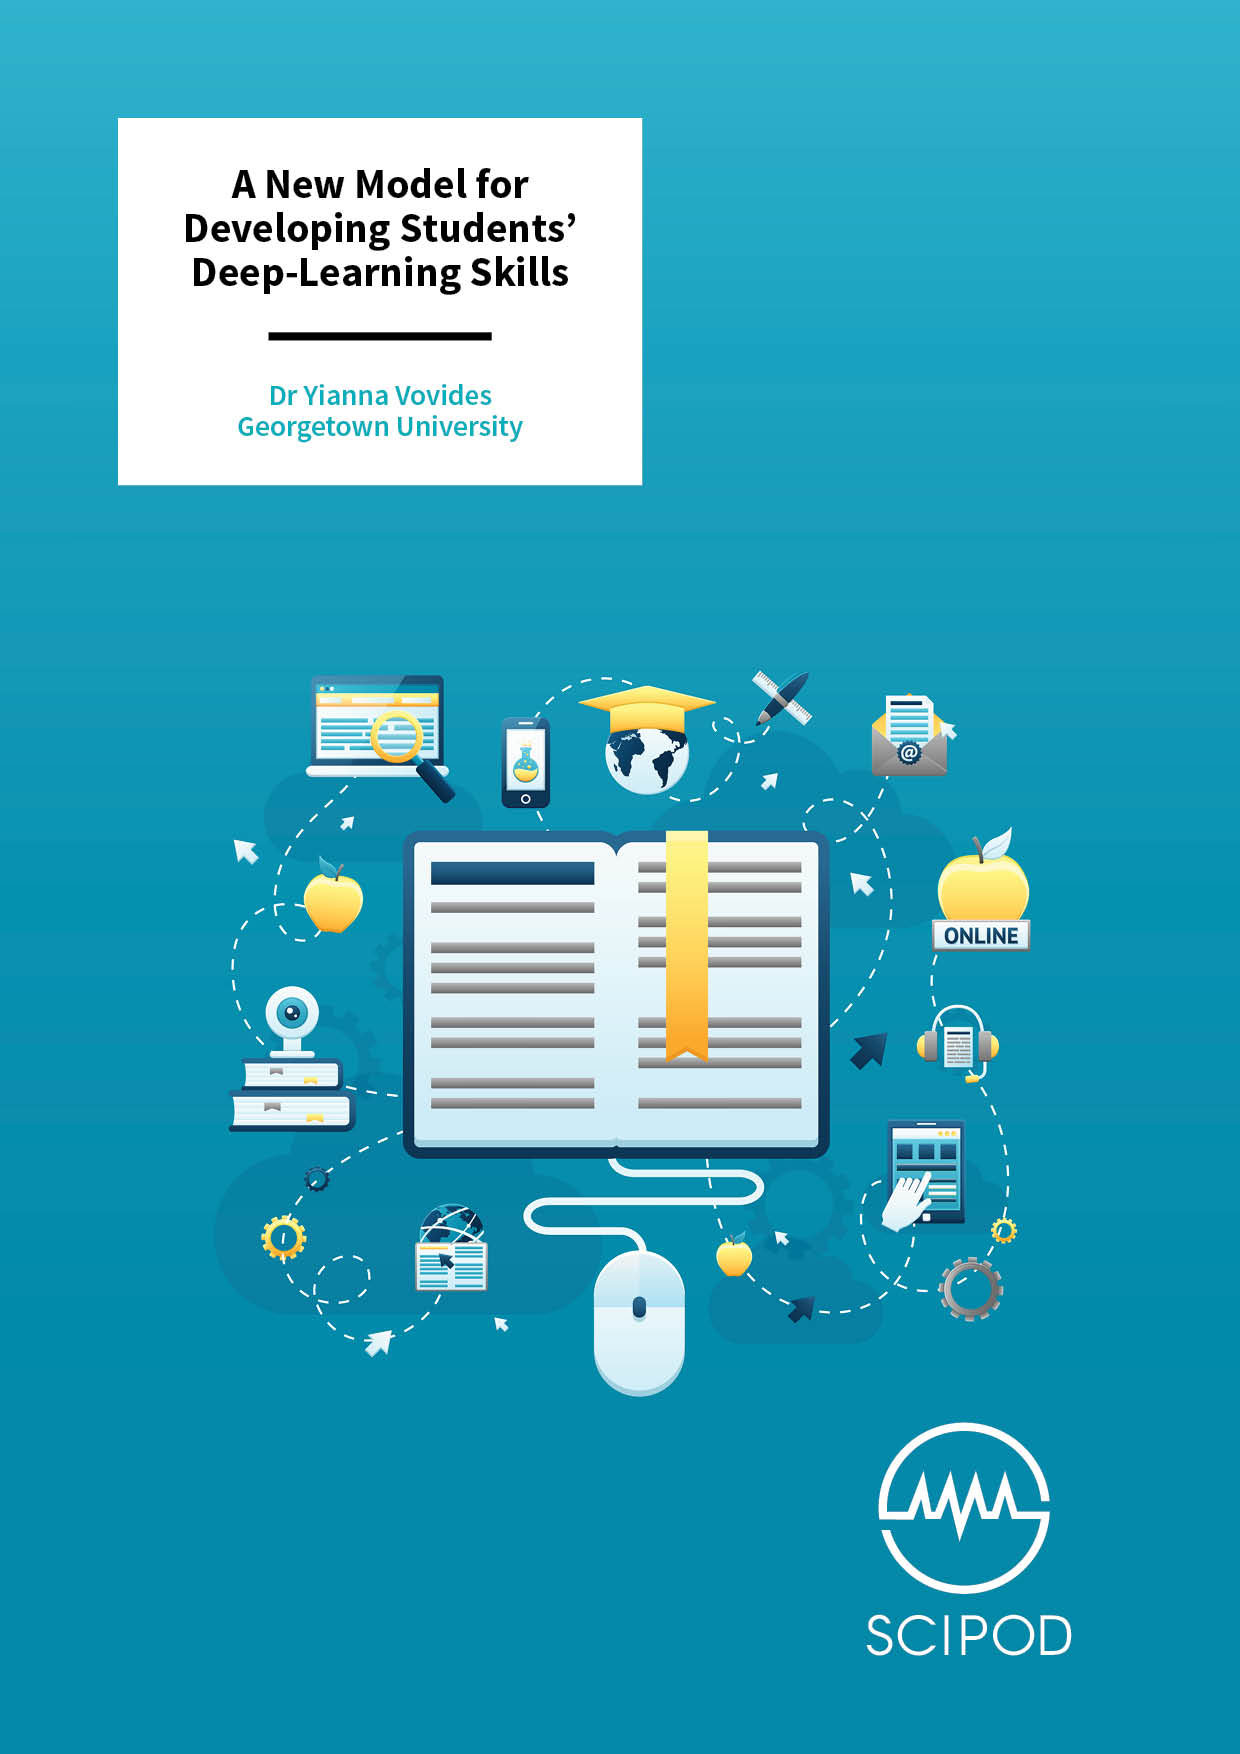 A New Model for Developing Students' Deep-Learning Skills – Dr Yianna Vovides, Georgetown University